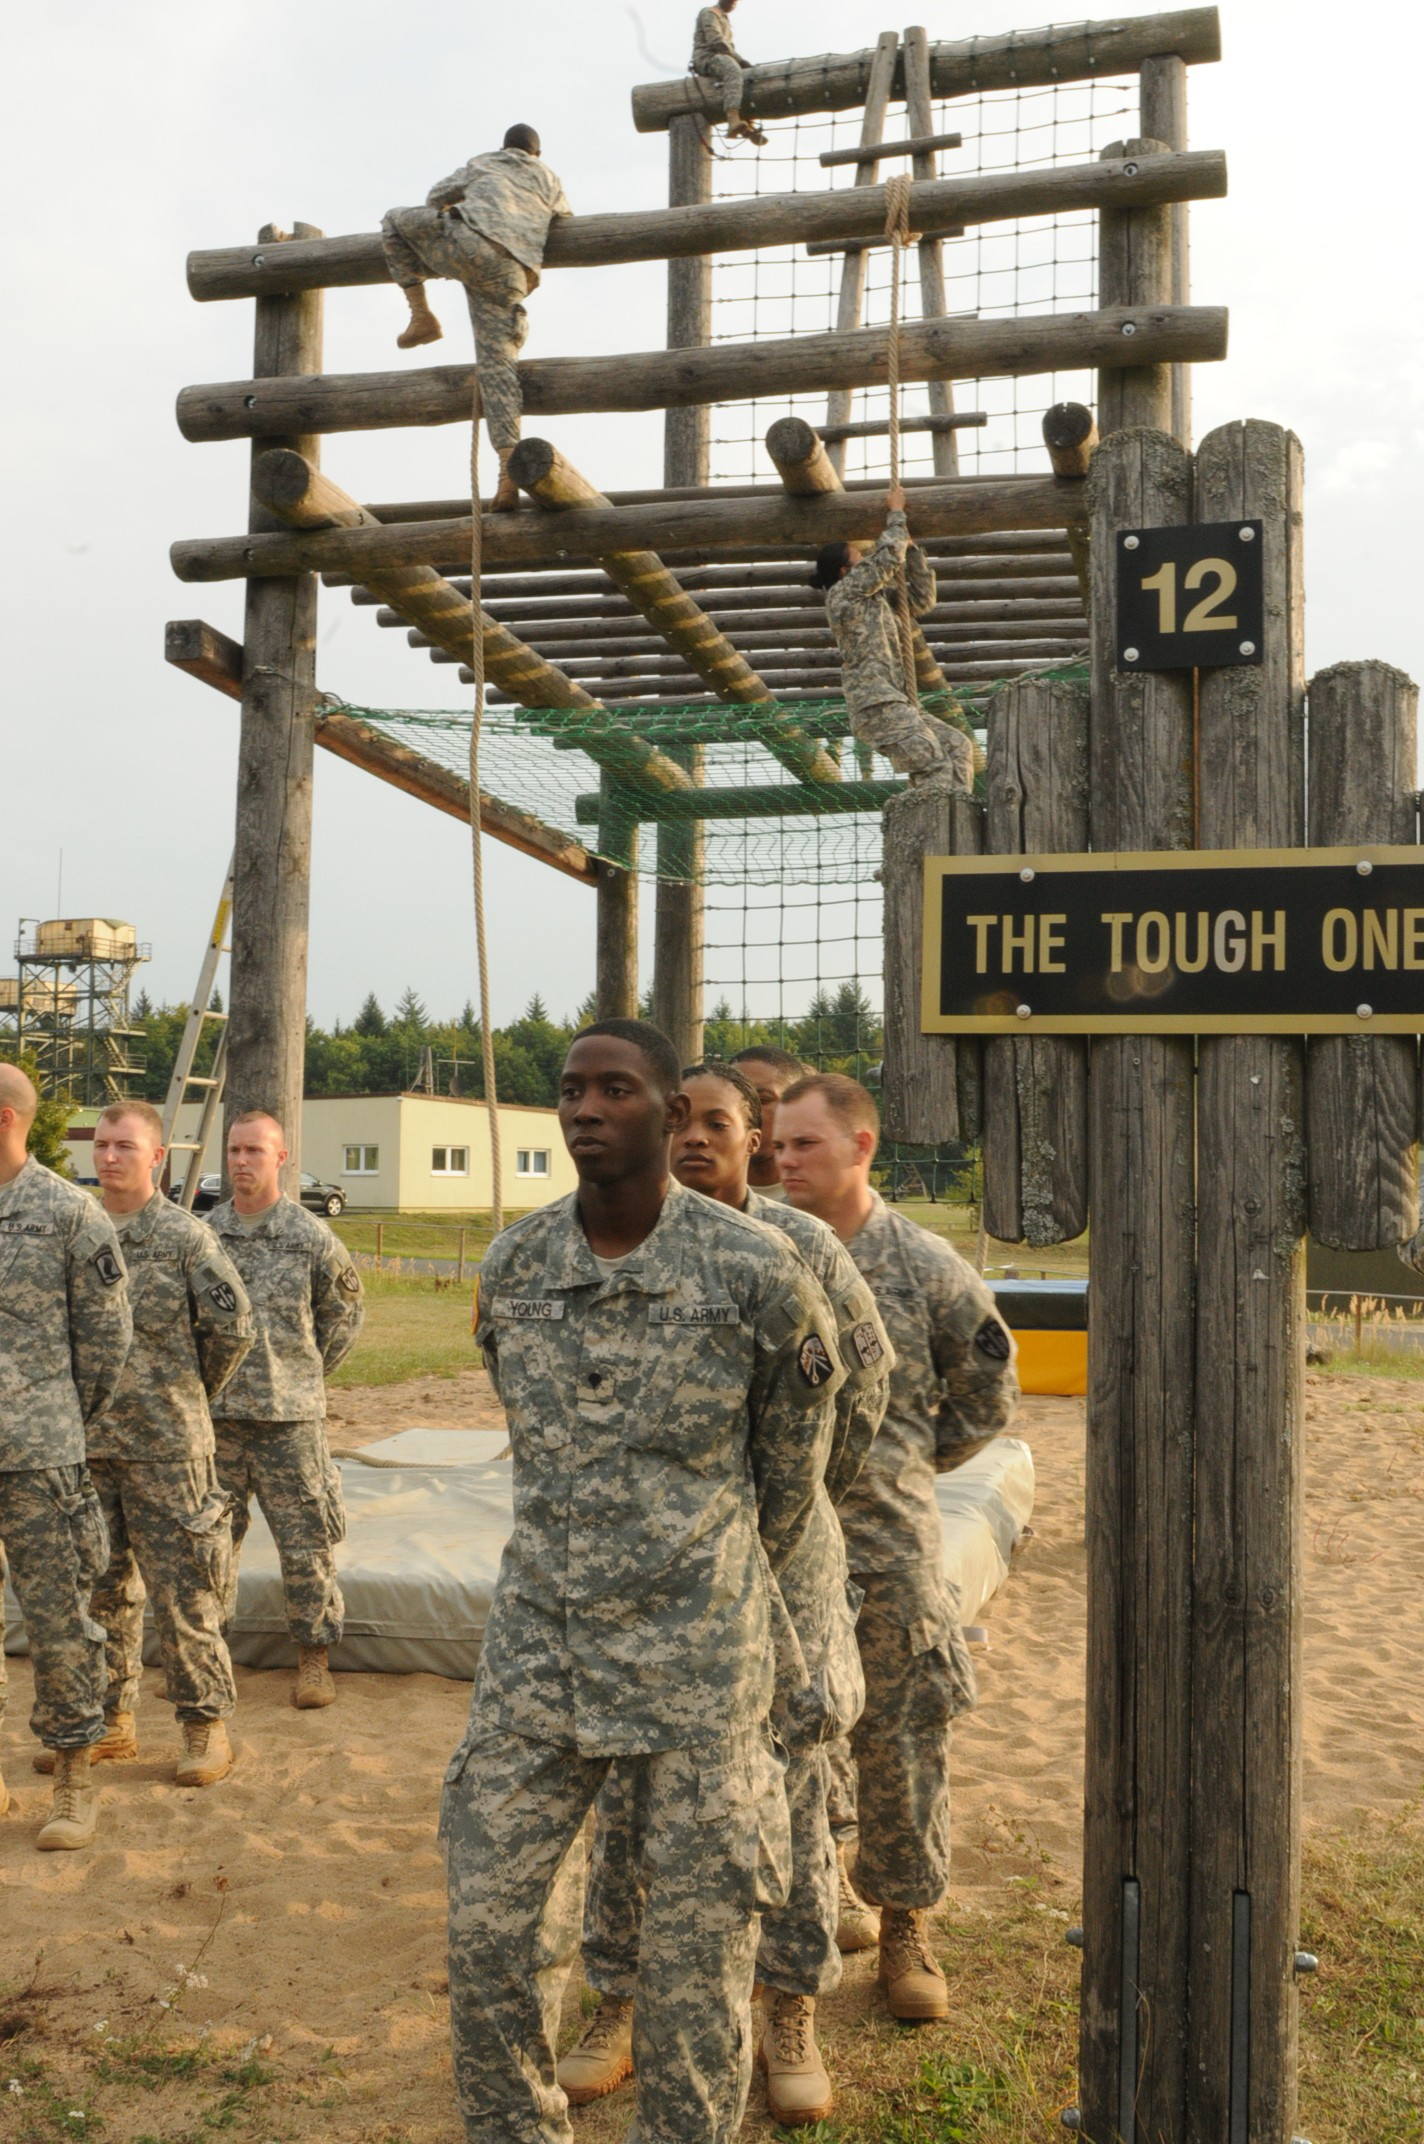 21st Tsc Hosts Air Assault Course Article The United States Army